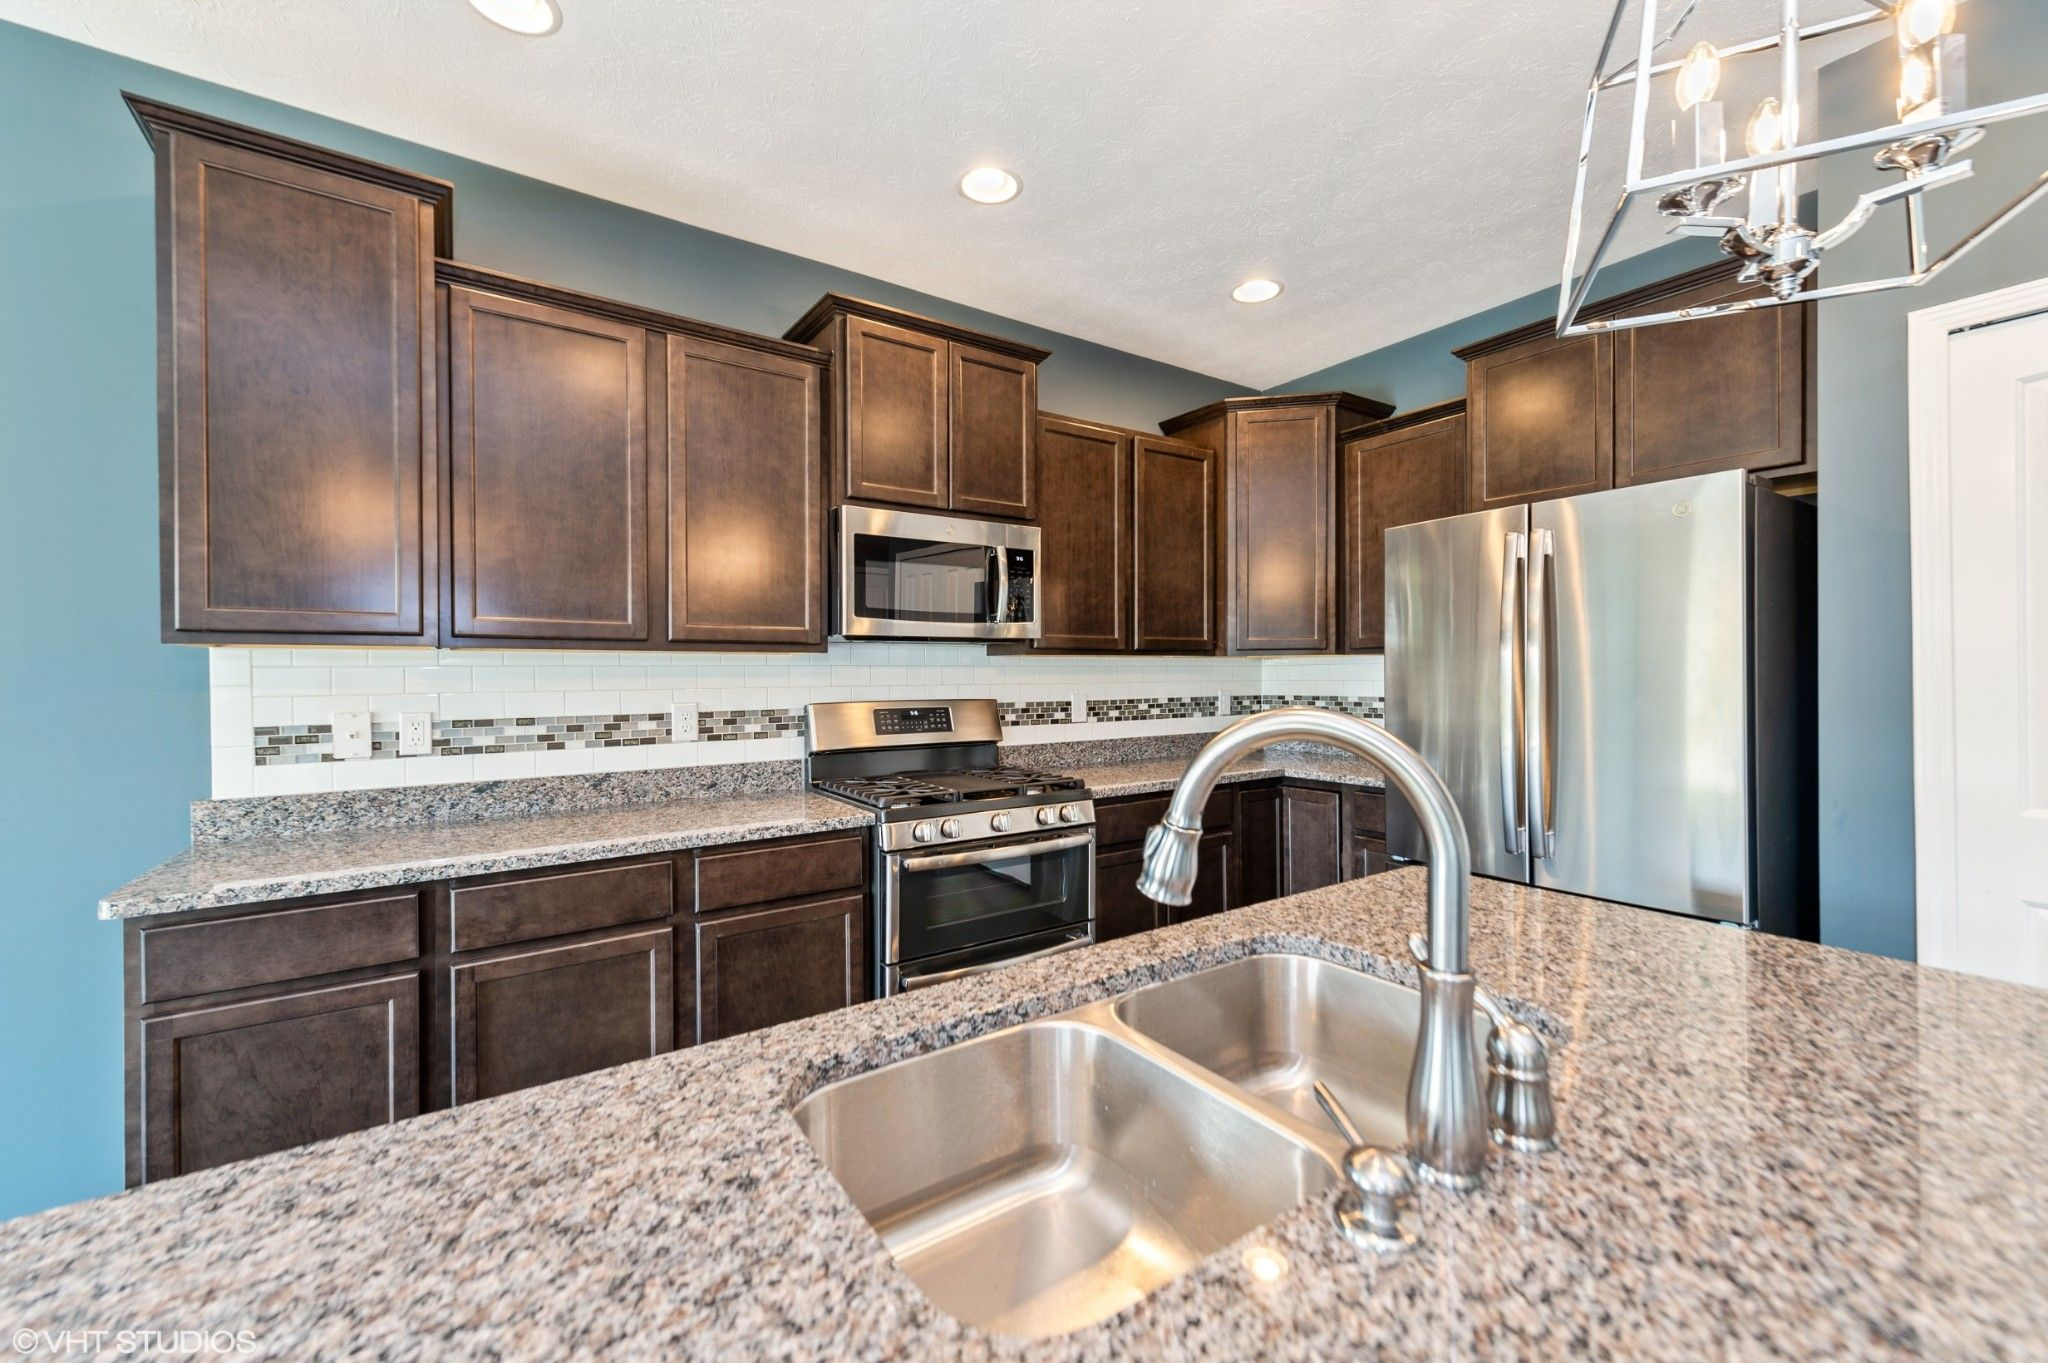 Kitchen featured in the Huntington By Olthof Homes in Fort Wayne, IN